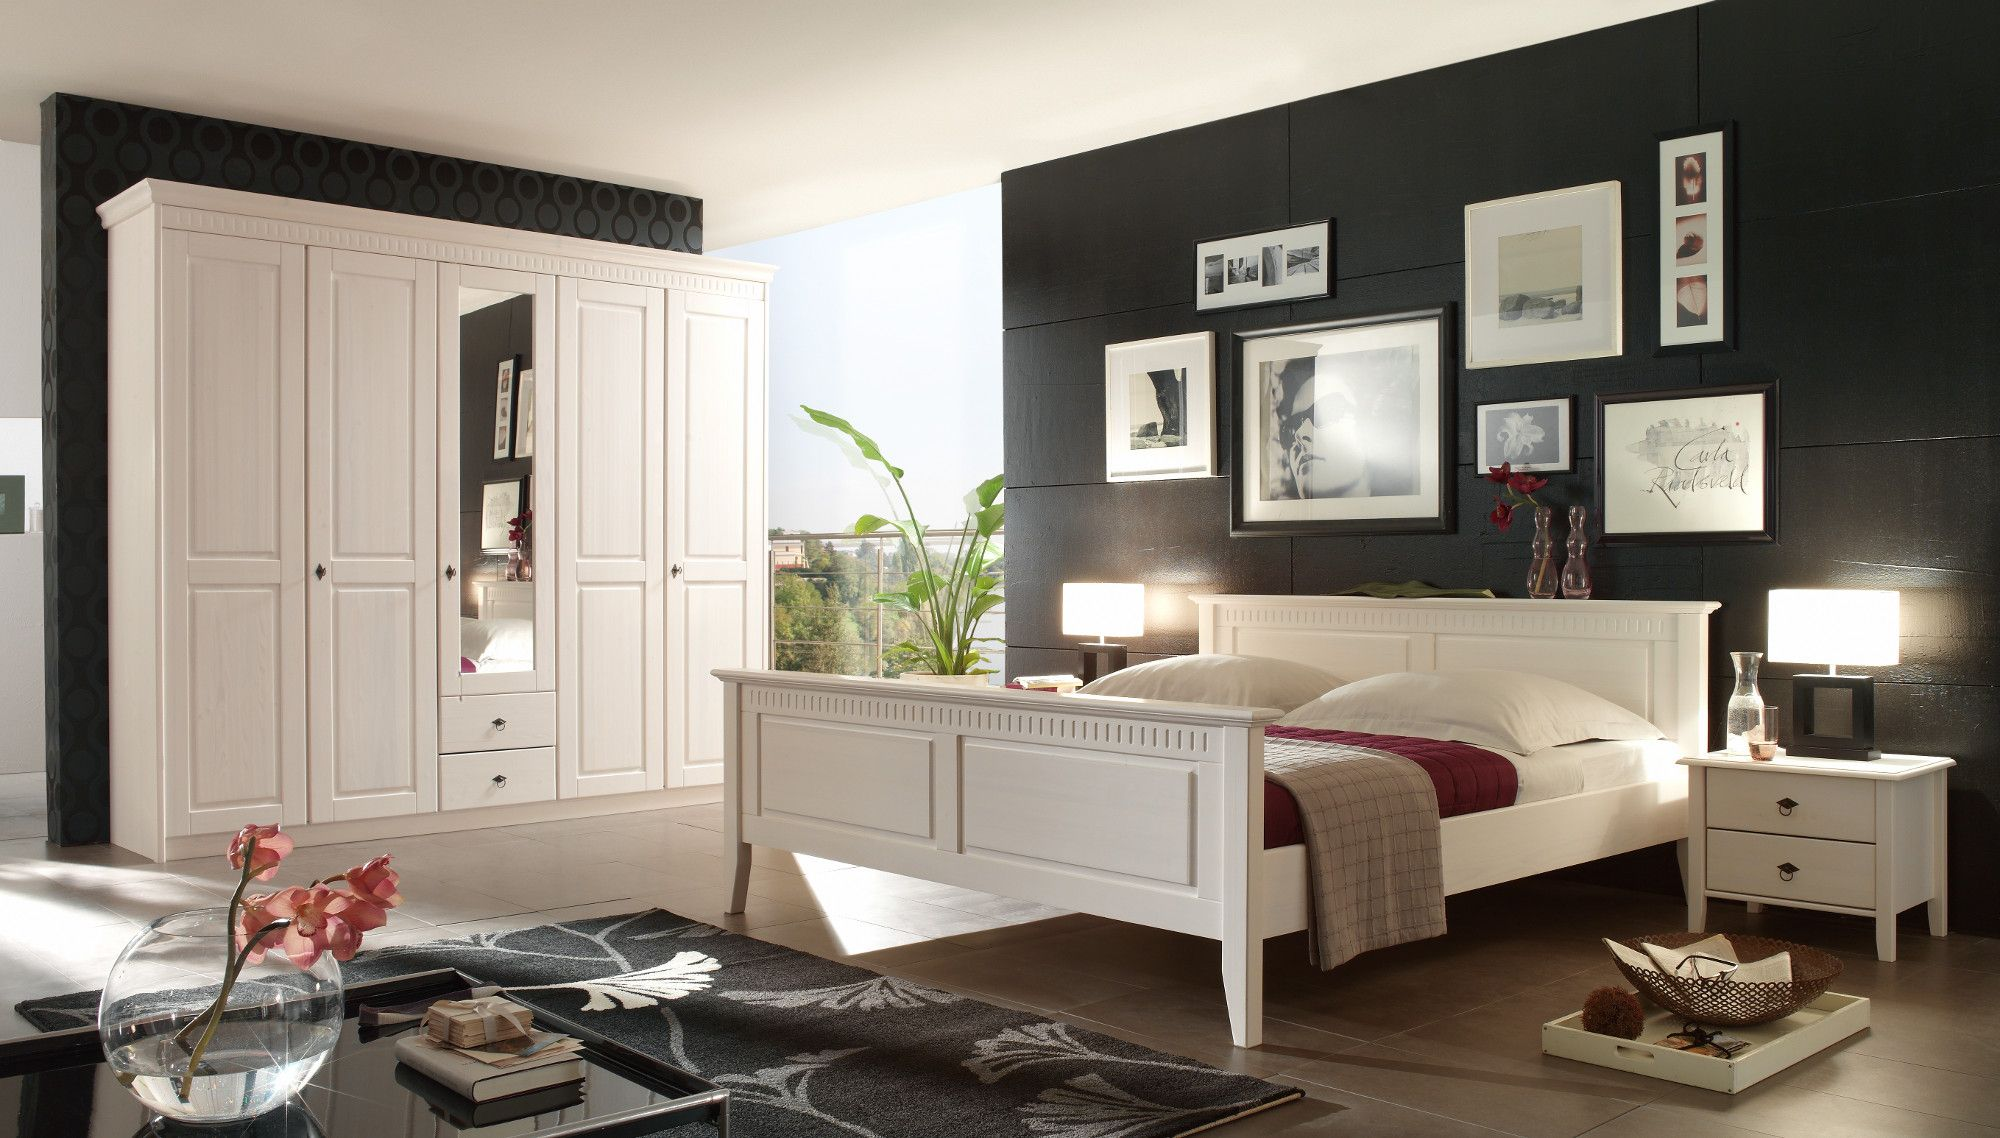 17 best ideas about schlafzimmer massivholz on pinterest, Innenarchitektur ideen